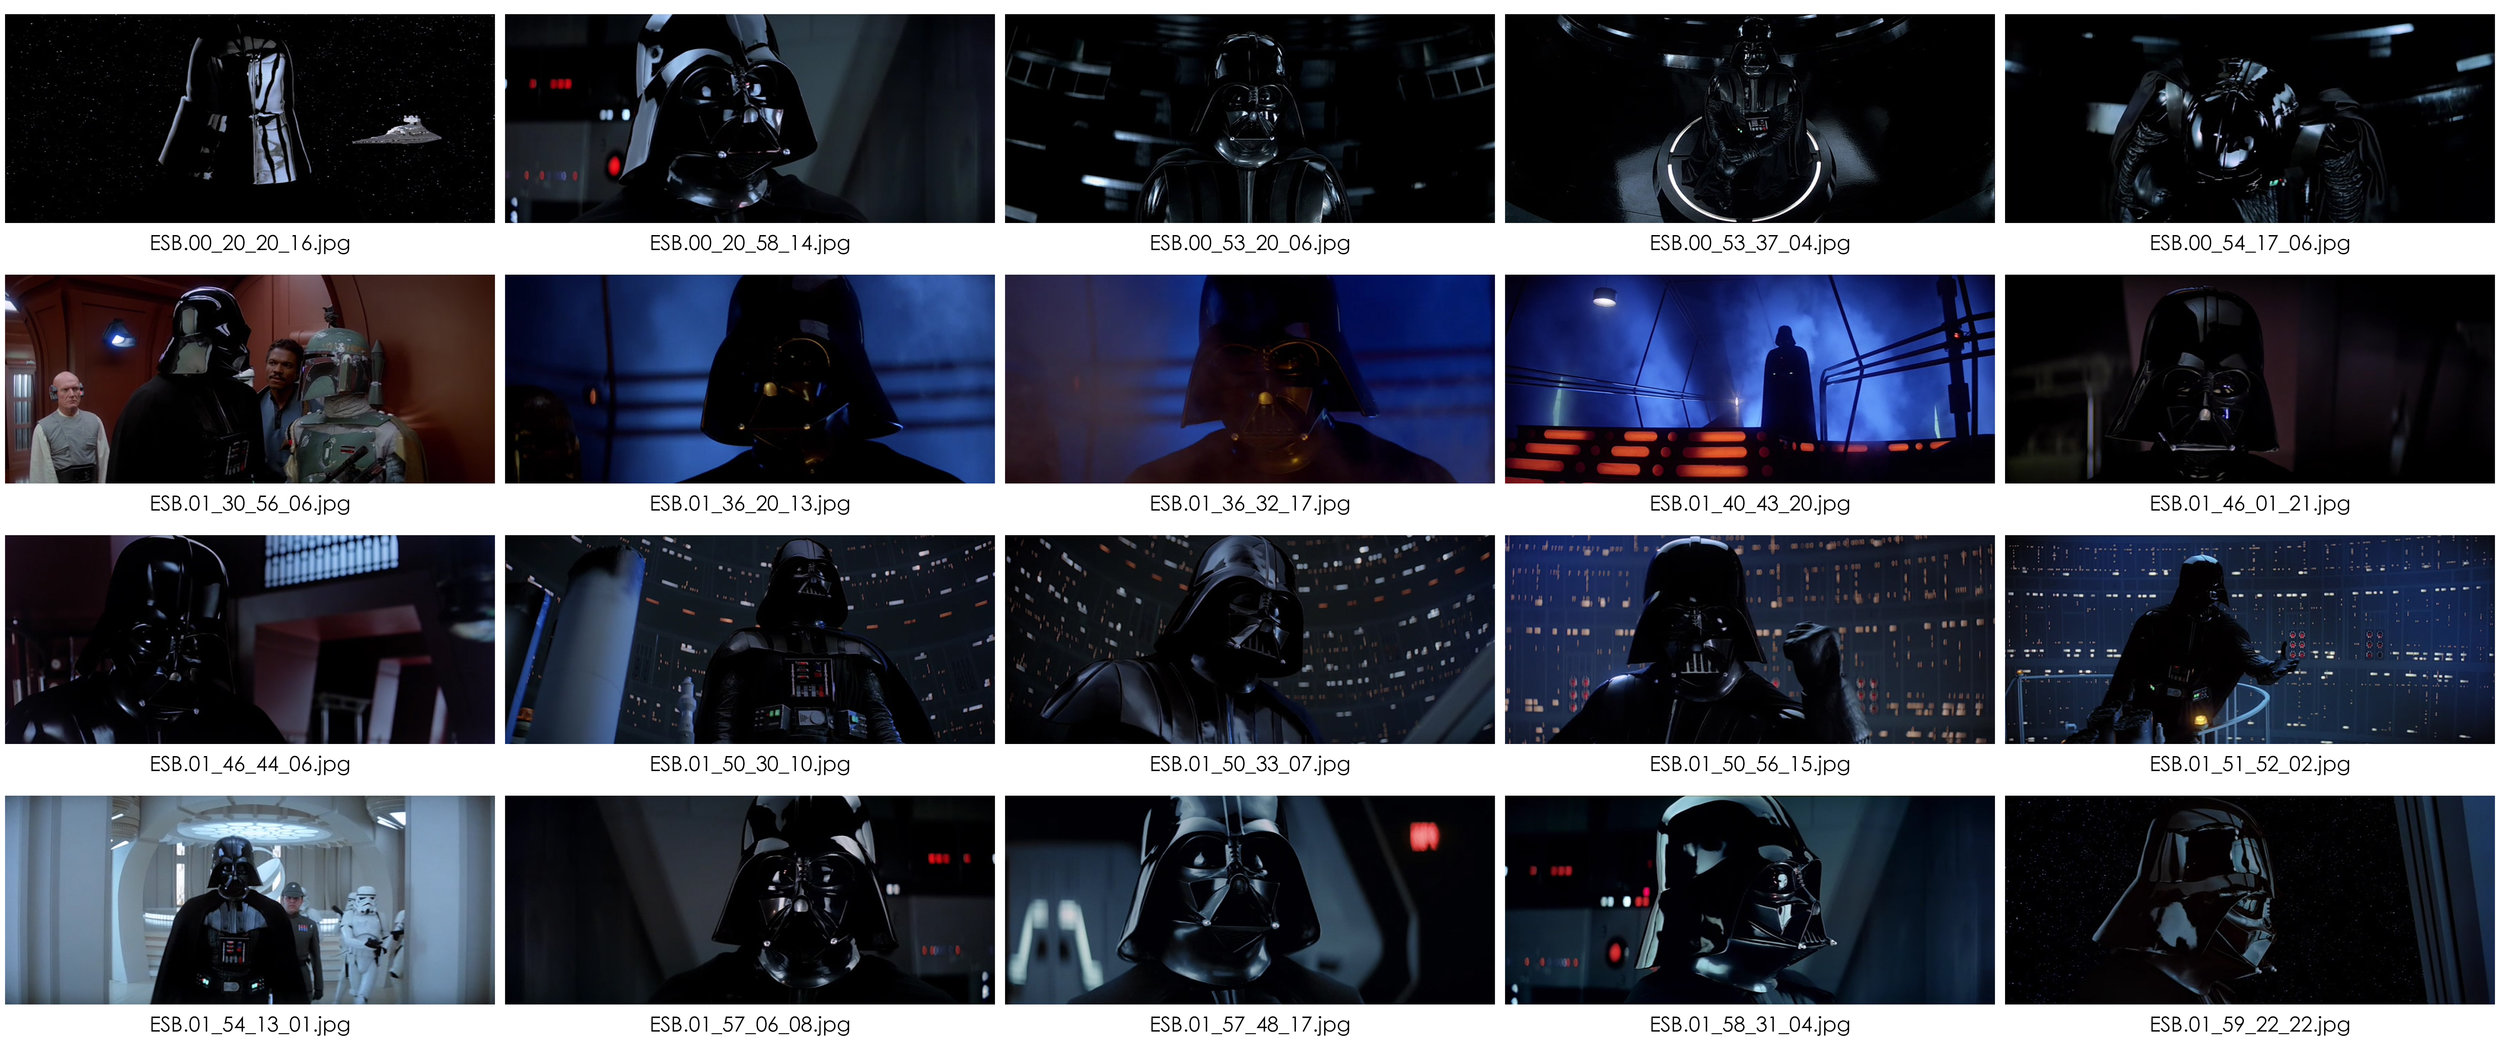 Darth Vader showcases many different lighting appraches.